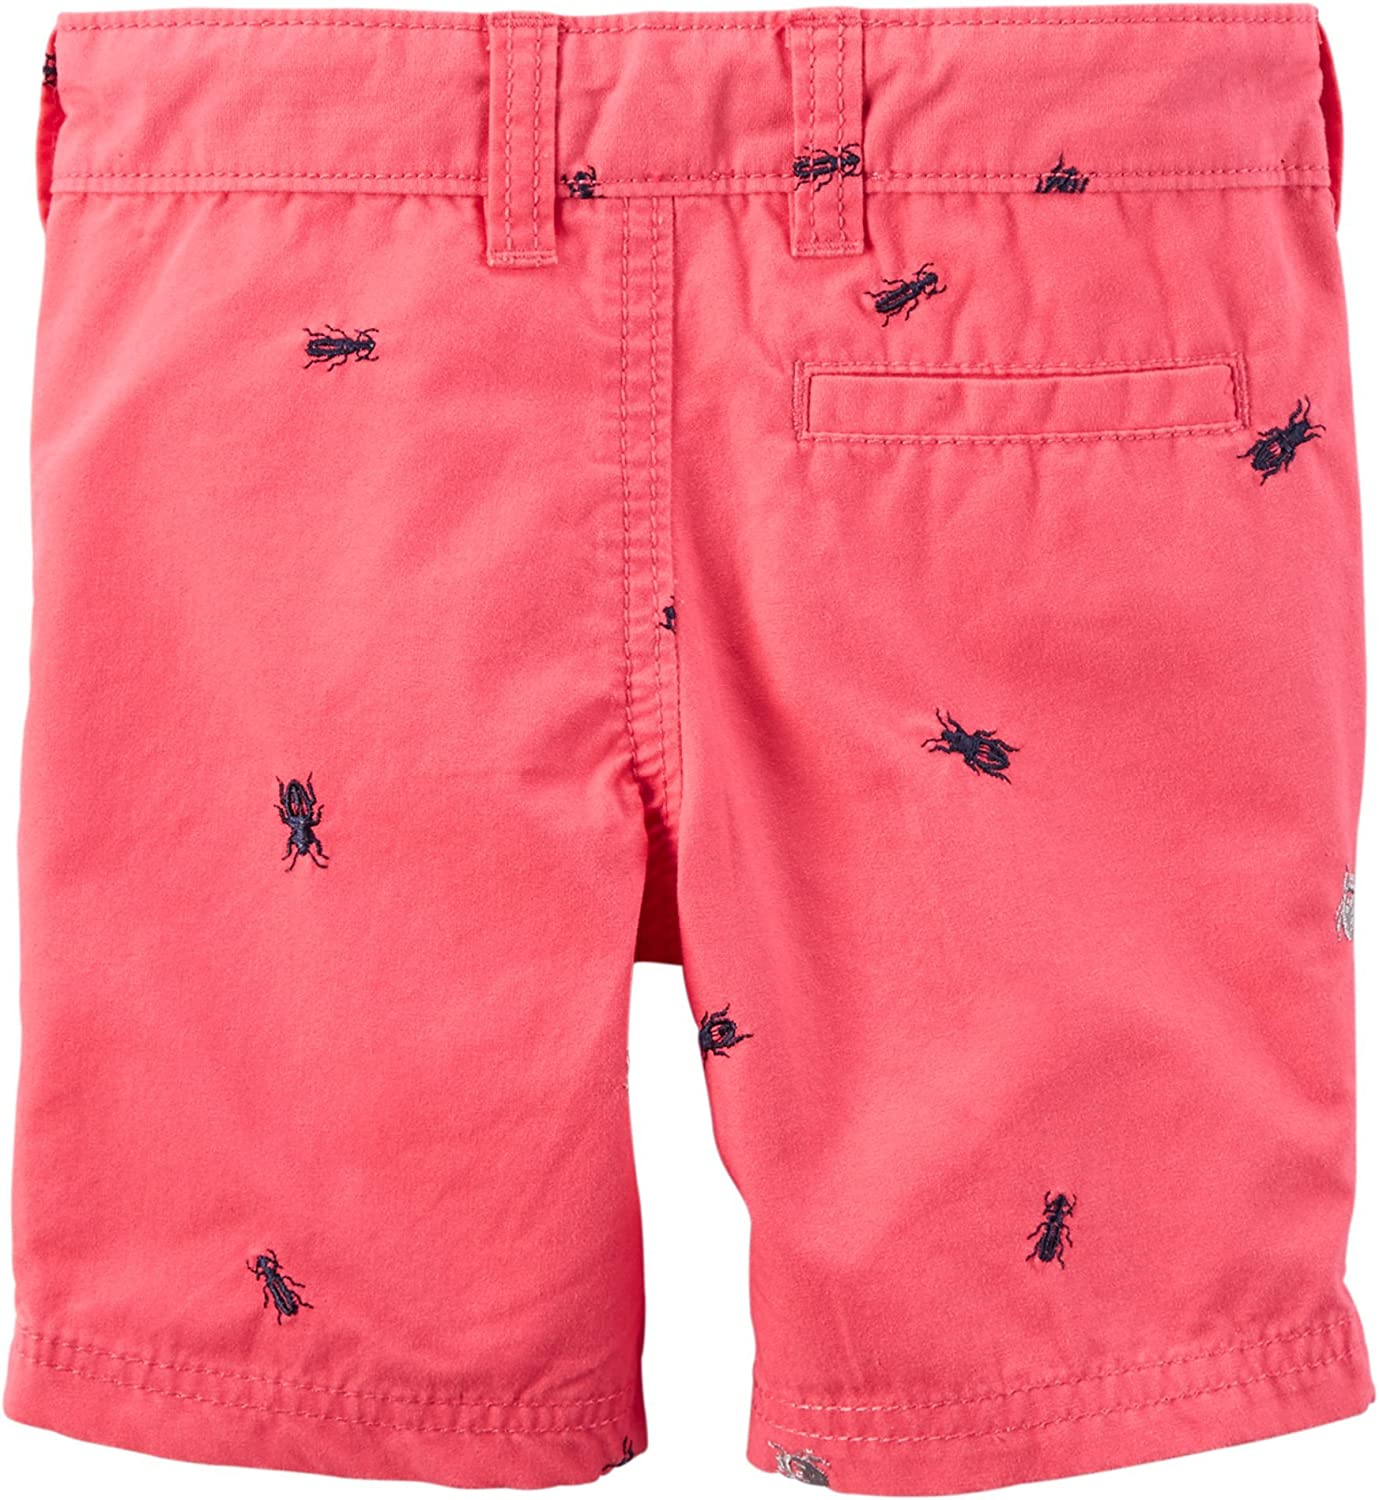 12 Months Pink Carters Baby Boys Schiffli Flat-Front Shorts Bugs